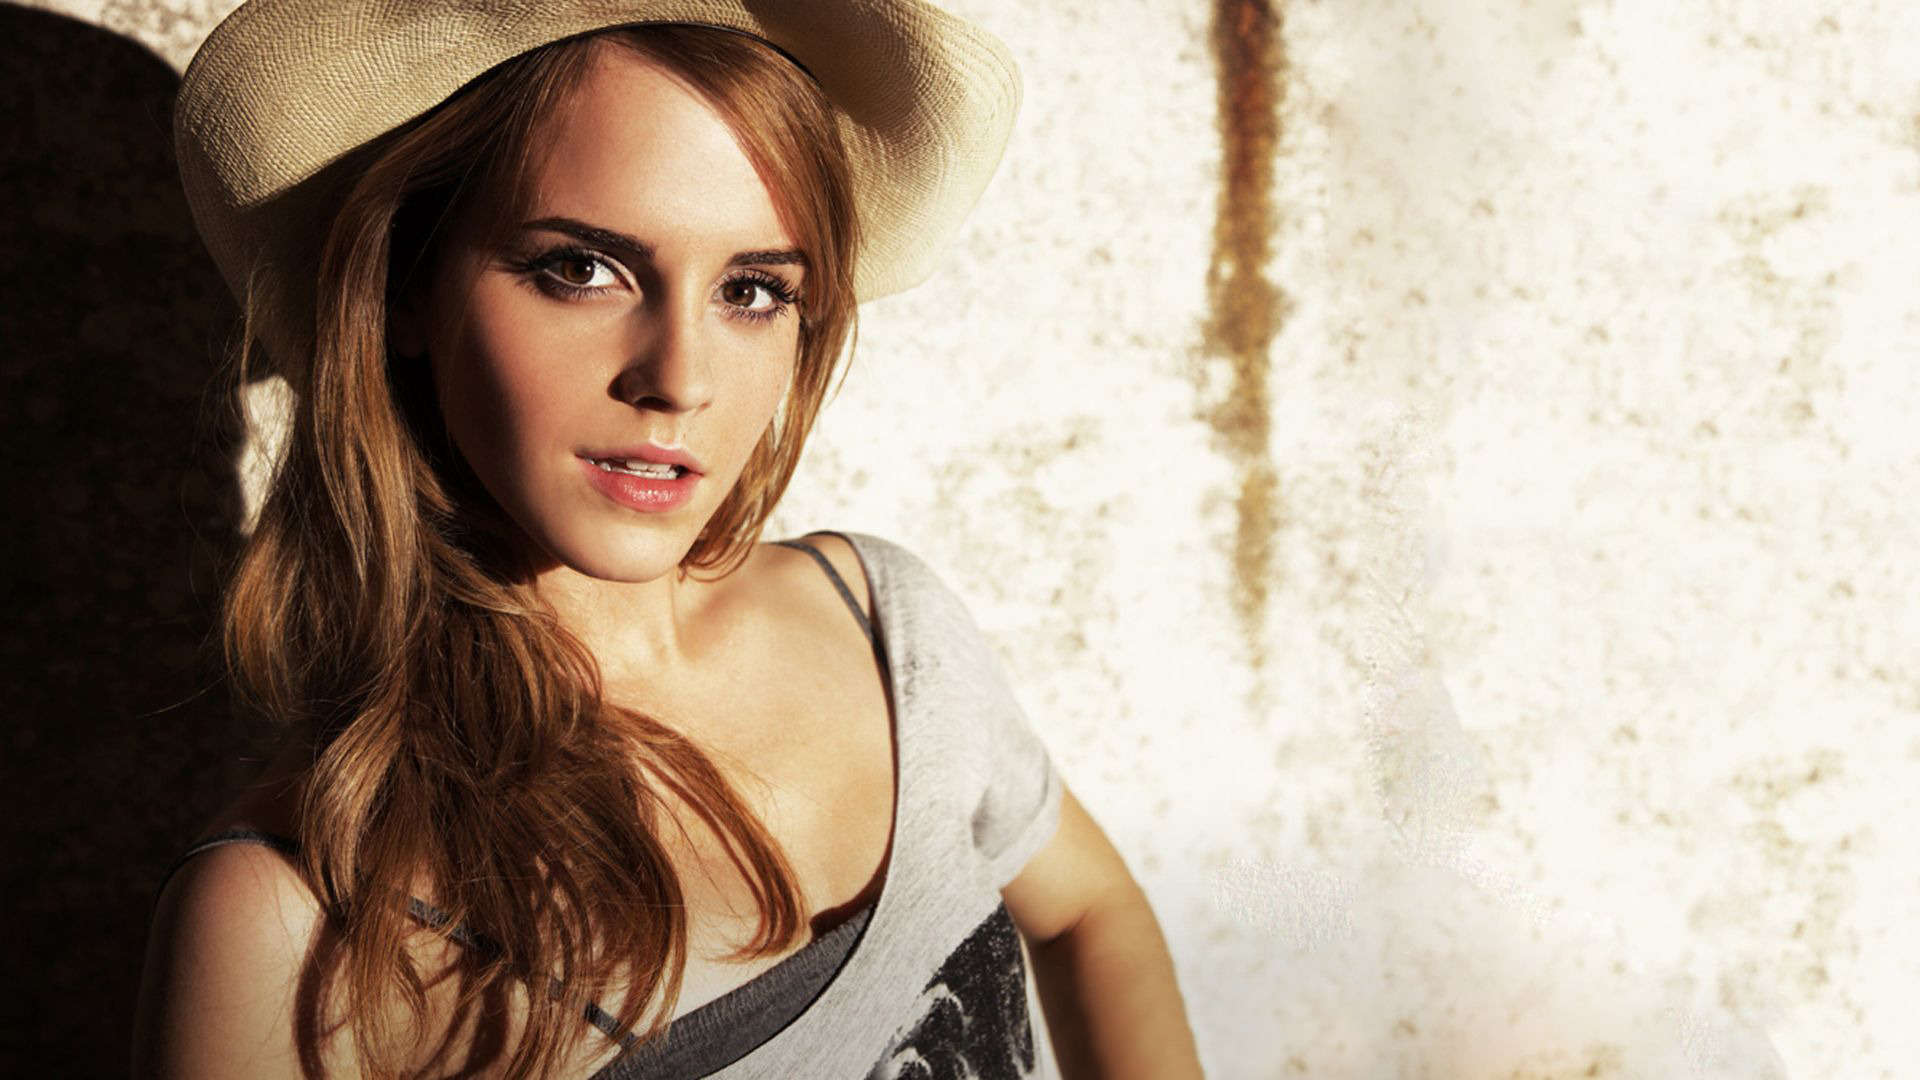 emma watson hd hot - photo #10